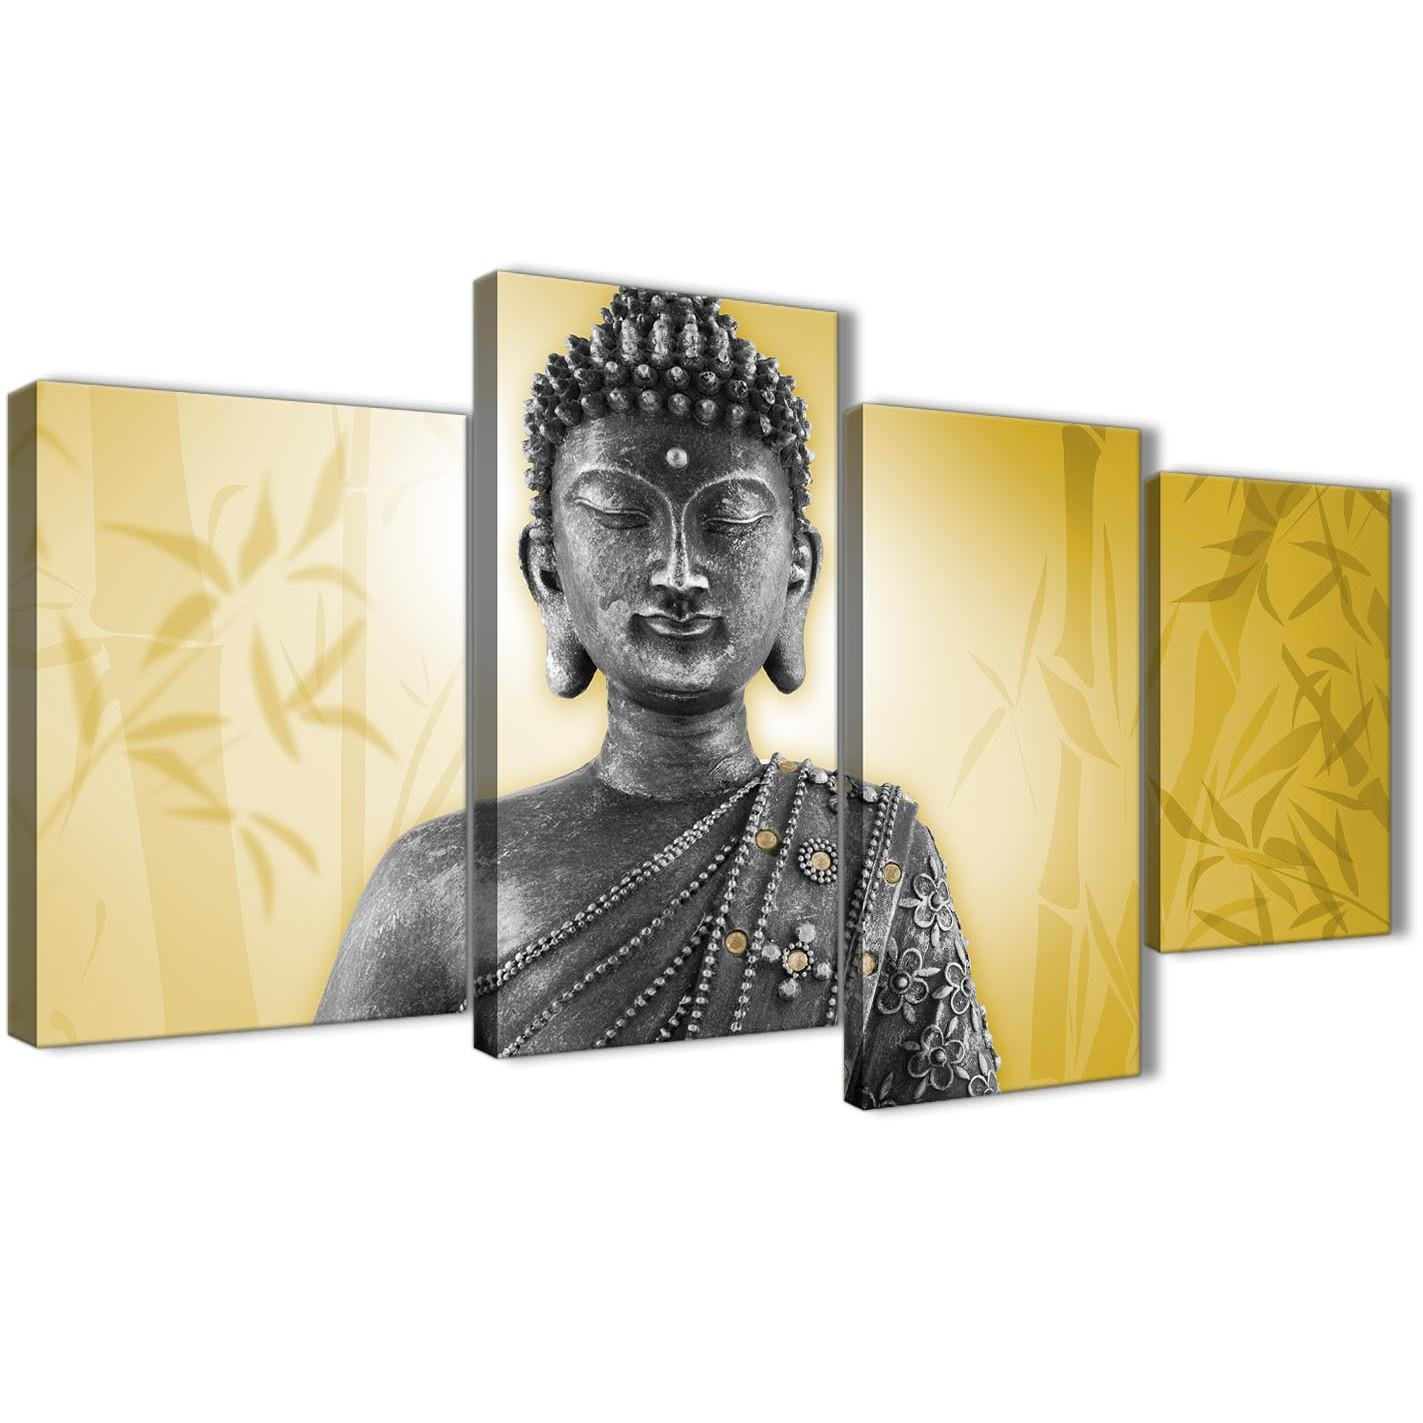 Large Mustard Yellow And Grey Silver Canvas Art Print Of Buddha With Regard To Silver Buddha Wall Art (Image 9 of 20)